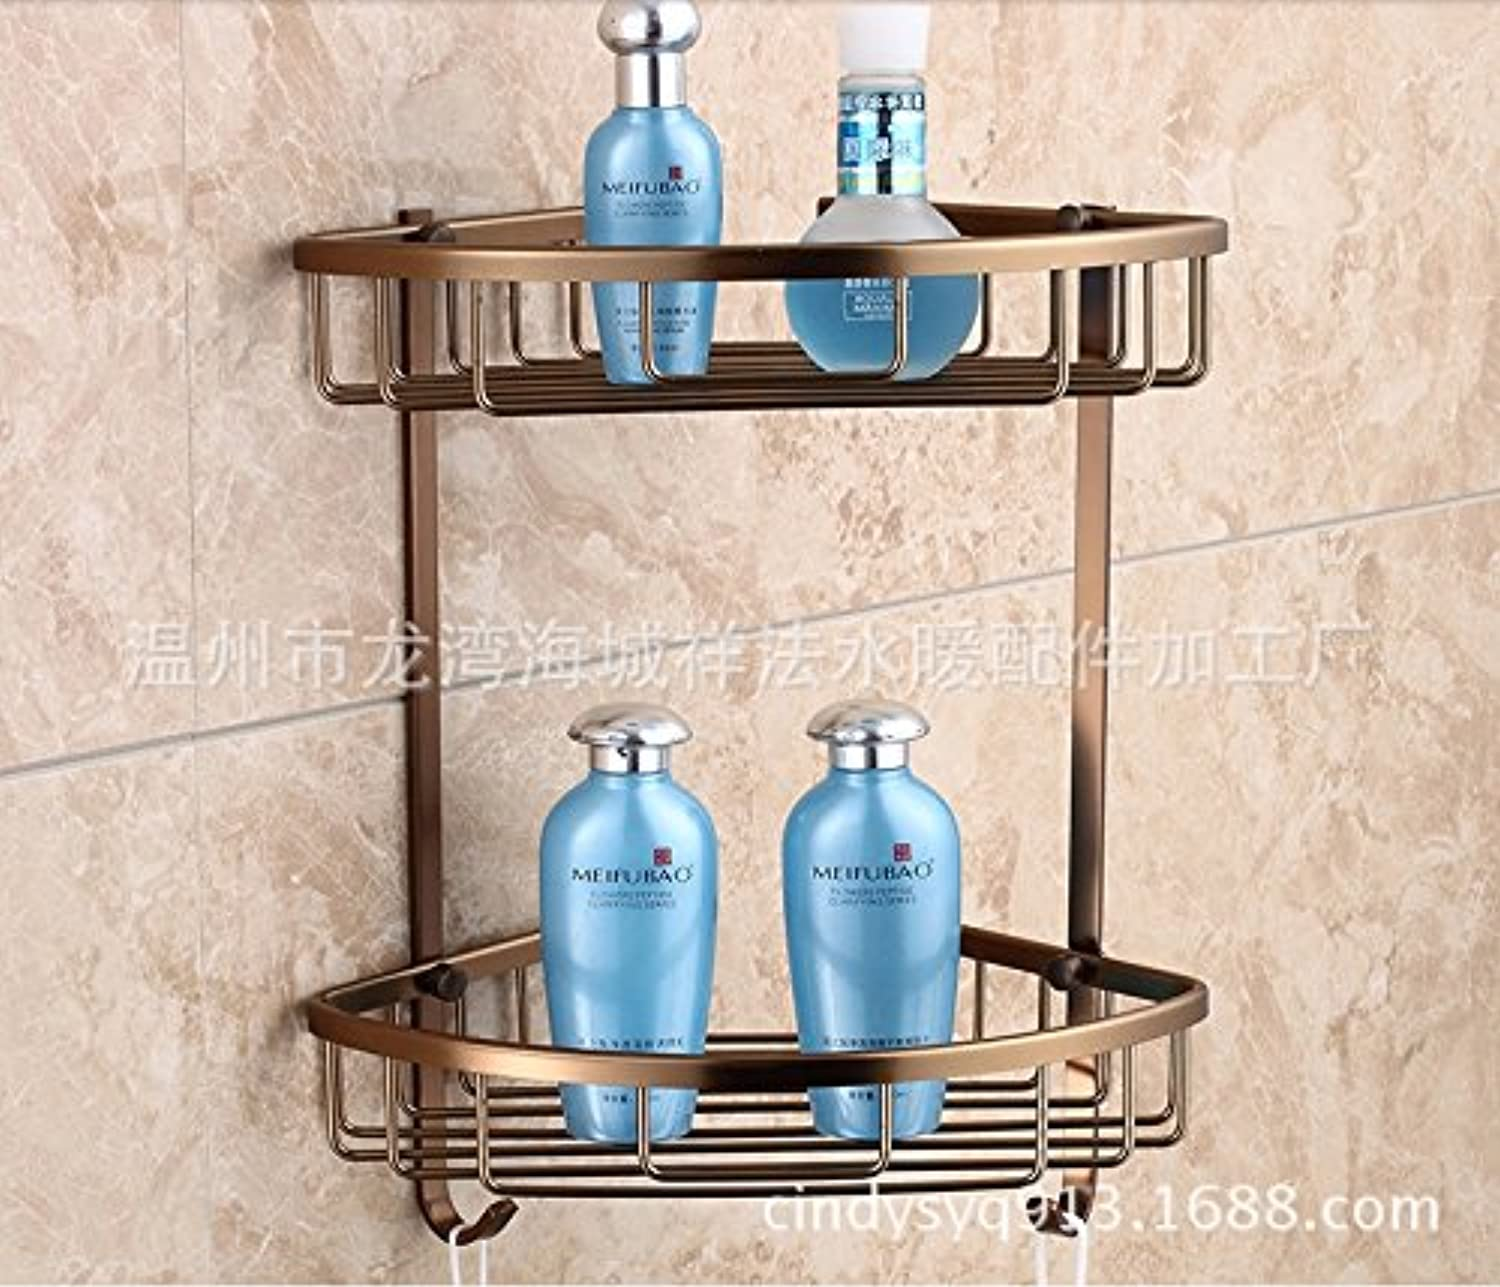 Triangular basket space aluminum antique double hook bathroom corner rack rack bathroom accessories